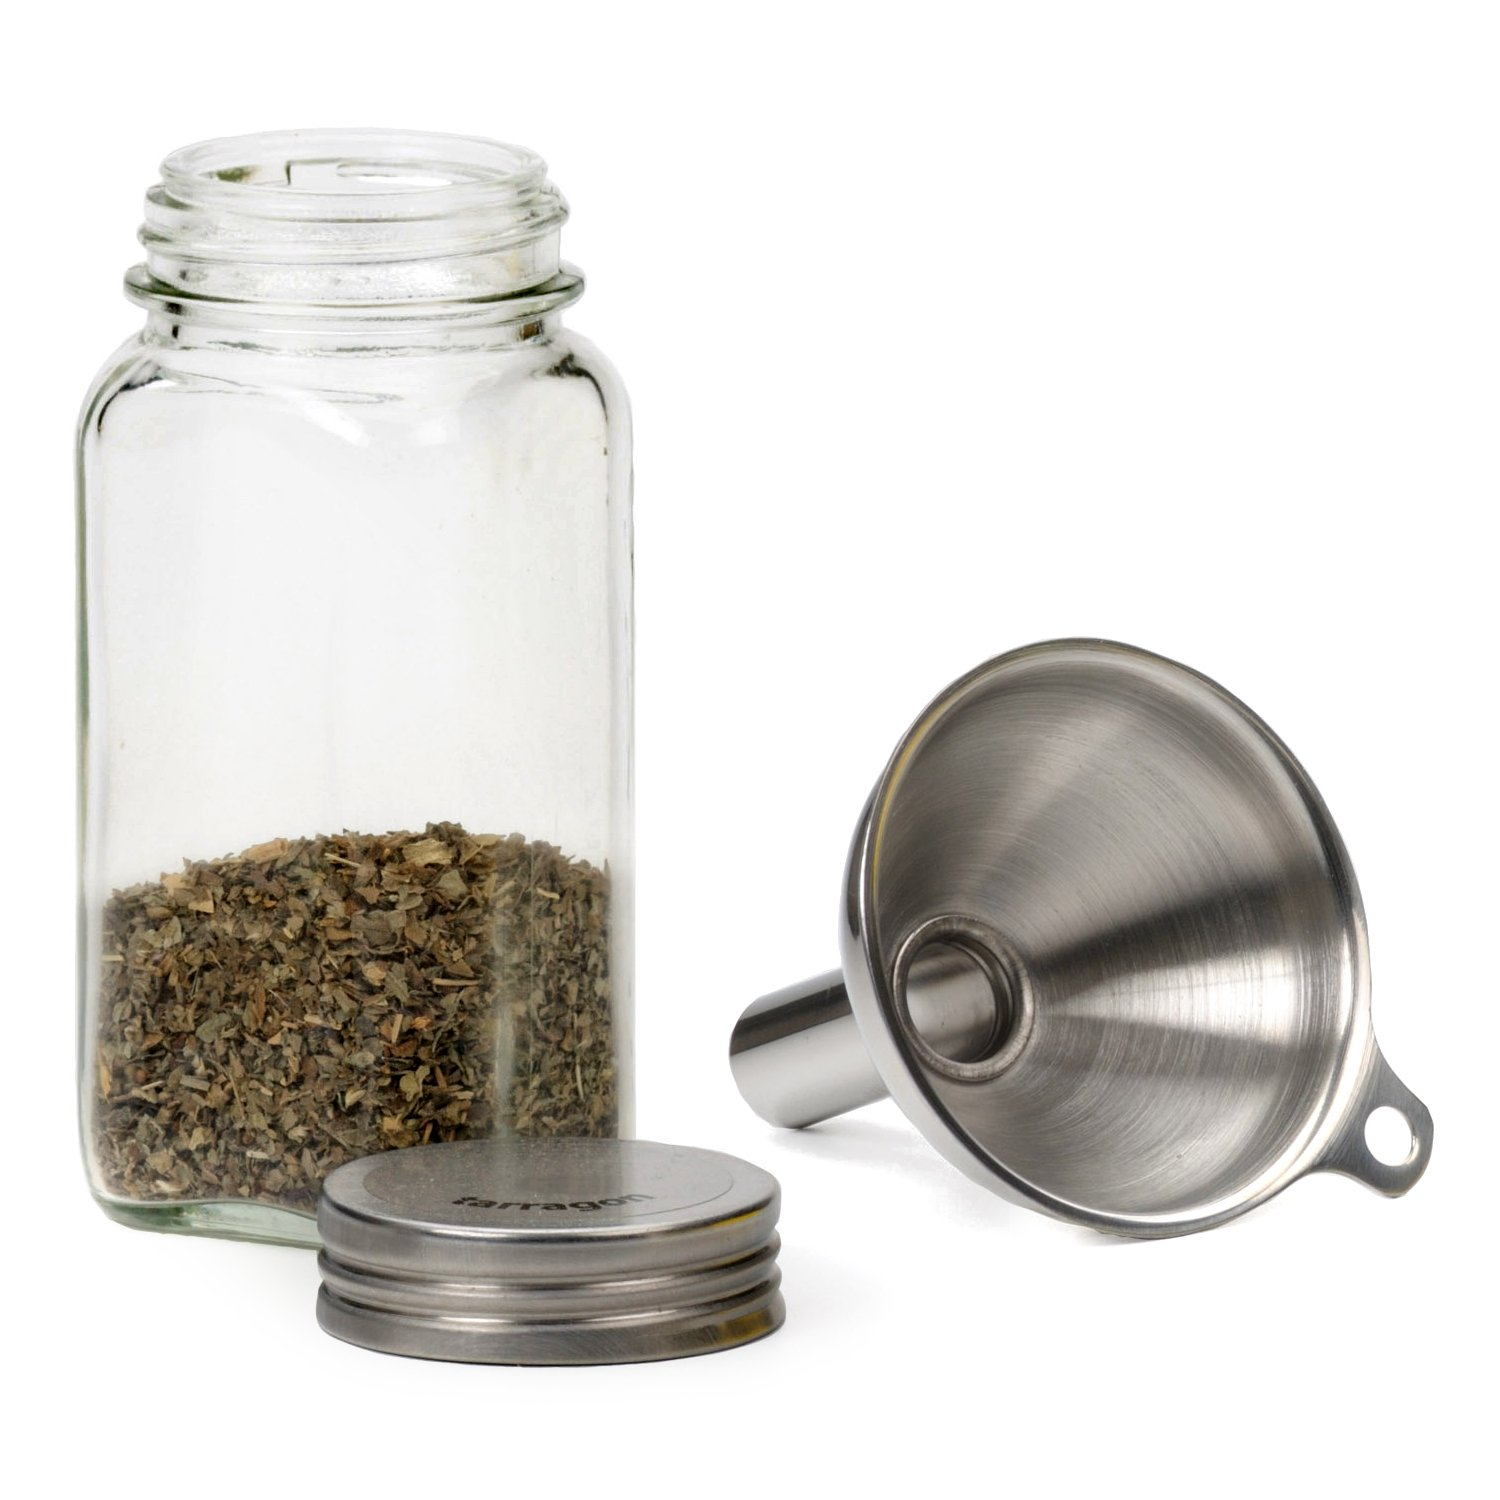 amazon com stainless steel funnel for filling narrow jars and